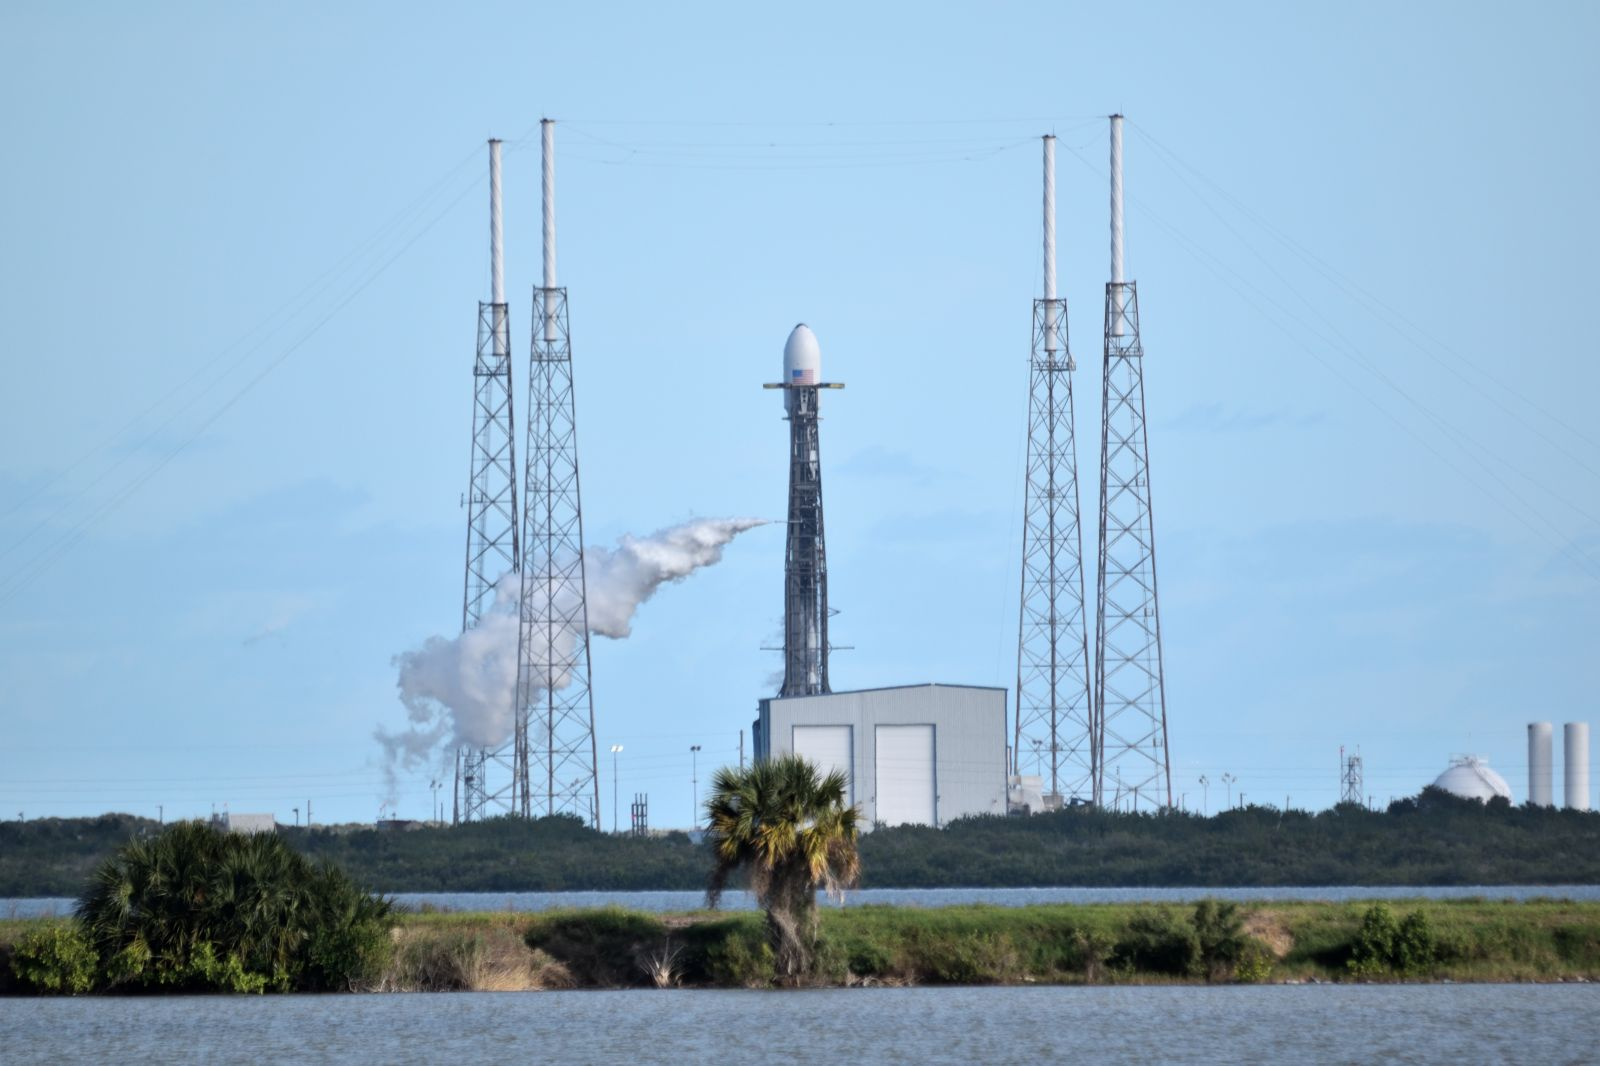 Falcon 9 will not be launching today due to upper level winds and rough seas (Archive Photo). Photo Credit: Jim Siegel / SpaceFlight Insider